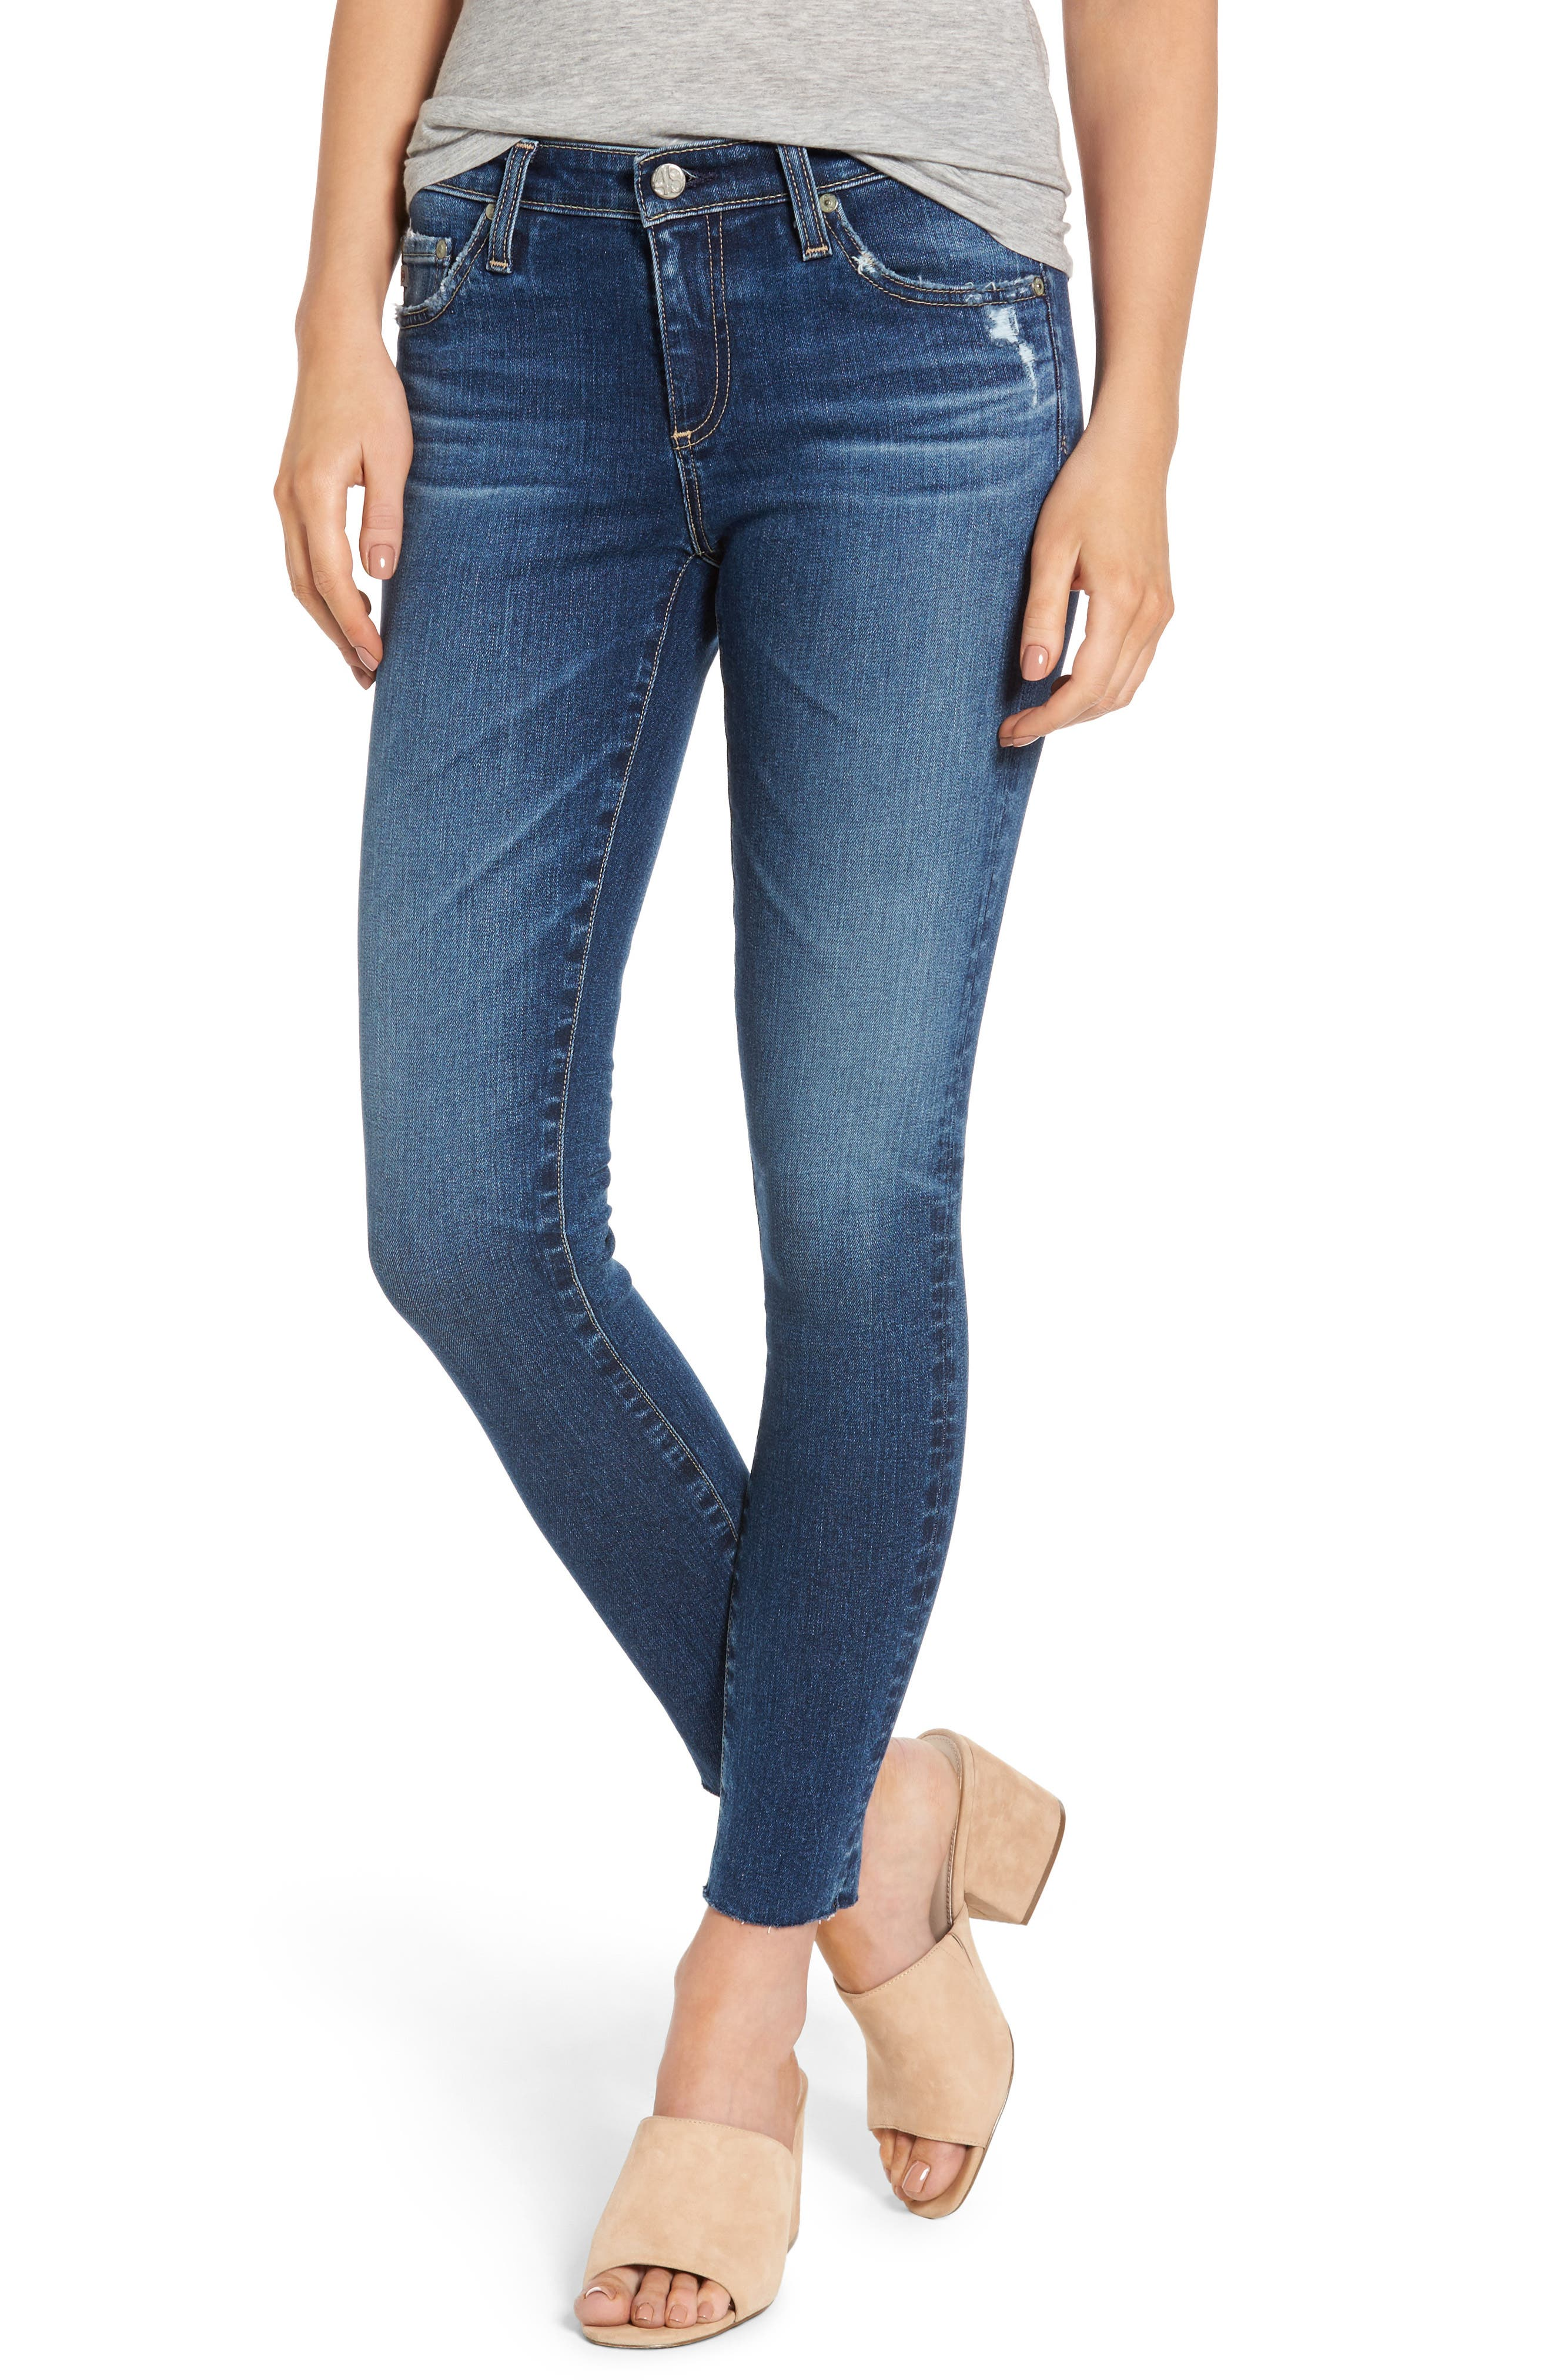 Stores that have colored skinny jeans